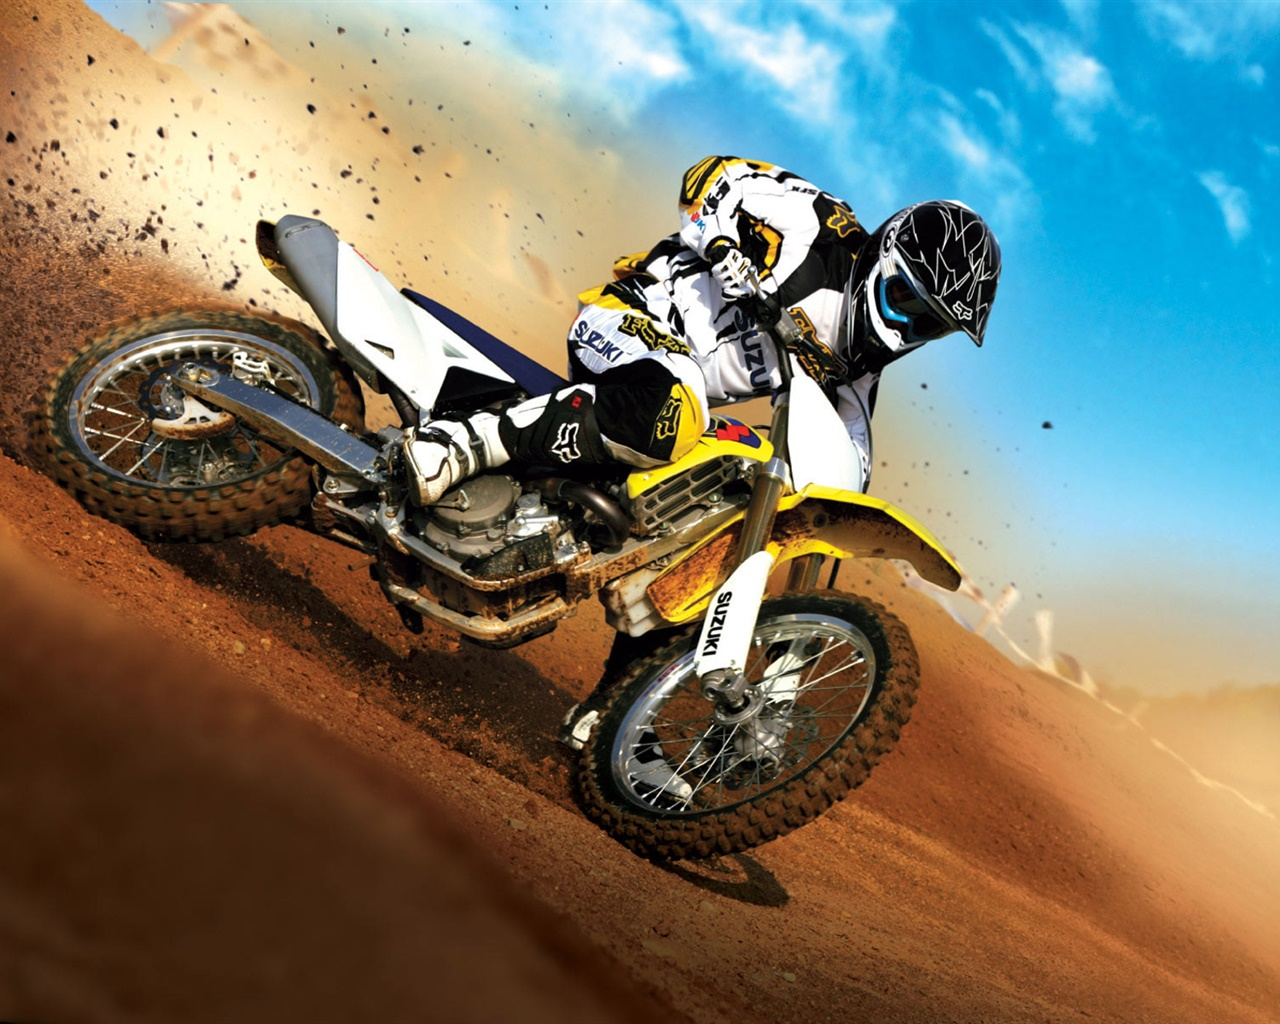 Suzuki motorcycle race 1280x1024 wallpaper